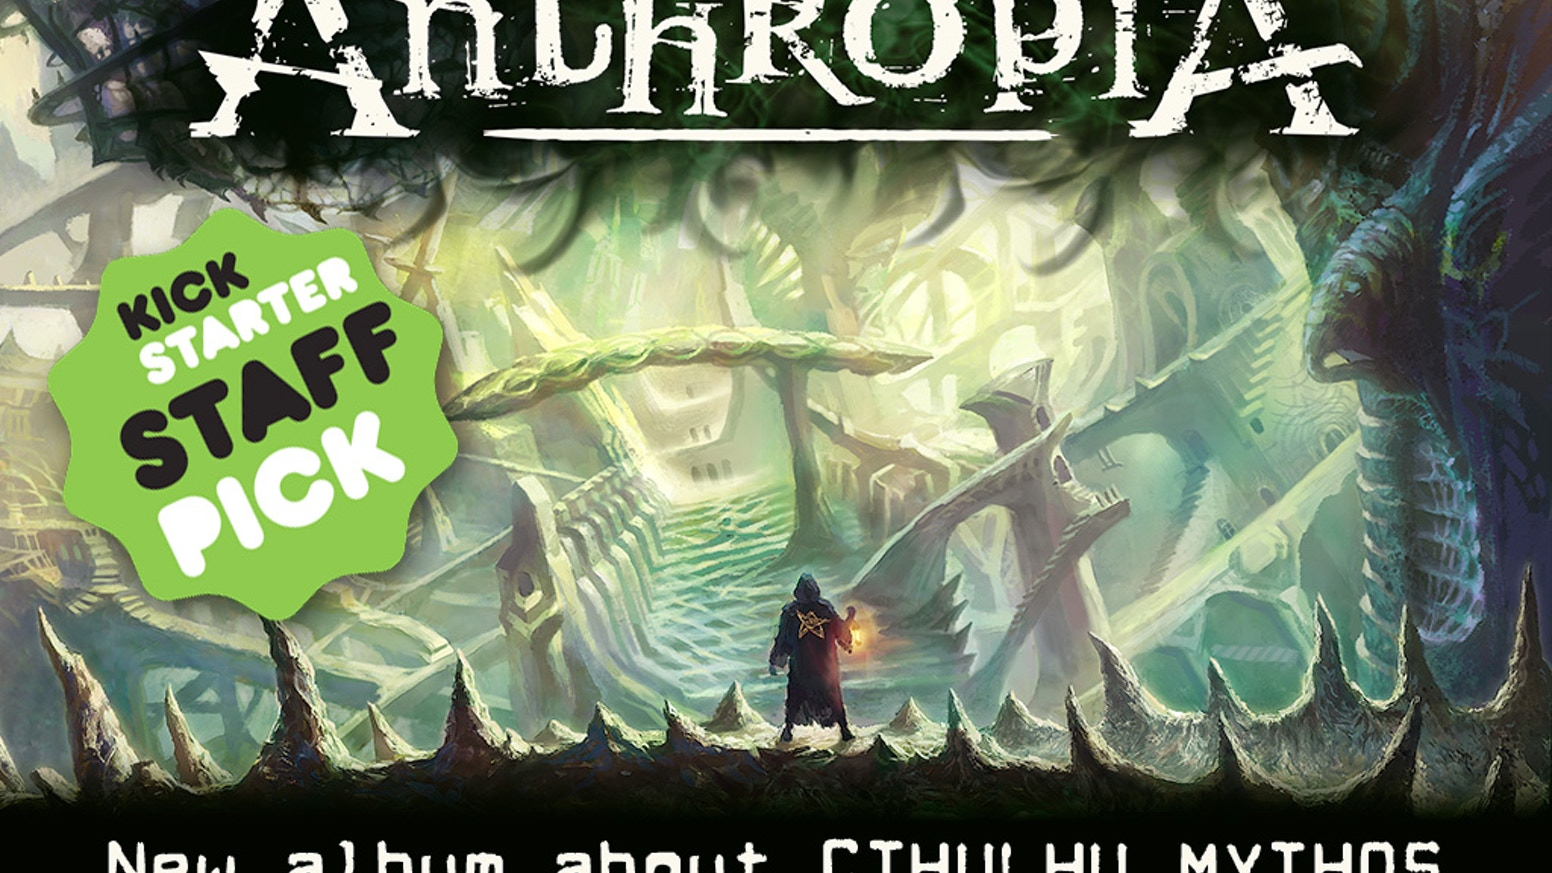 "Help us release ""Non-Euclidean Spaces"", our new album based on Cthulhu Mythos, featuring Arjen Lucassen & Edu Falaschi."